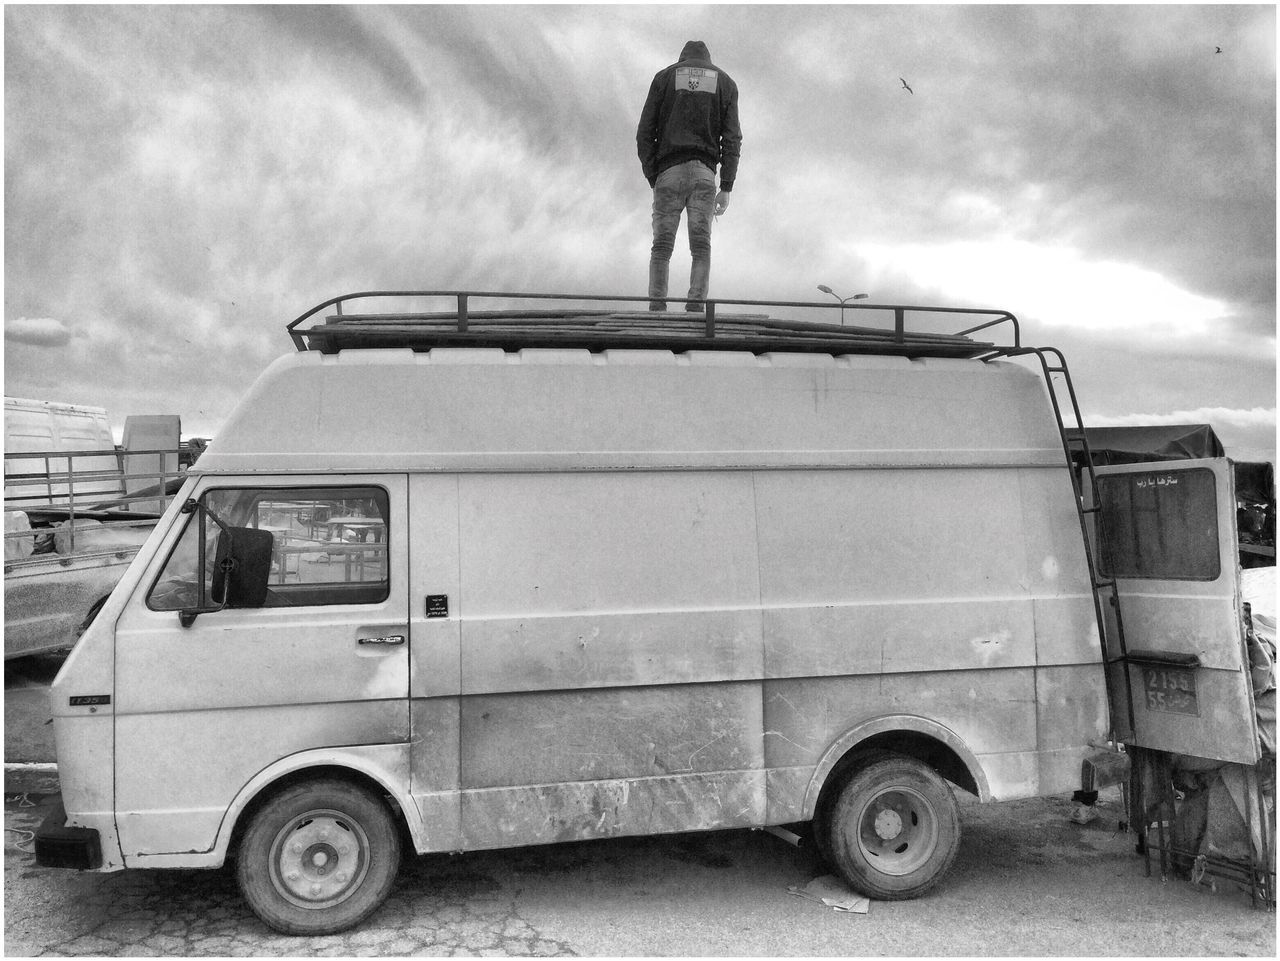 mode of transport, real people, land vehicle, transportation, full length, sky, day, men, outdoors, cloud - sky, one person, people